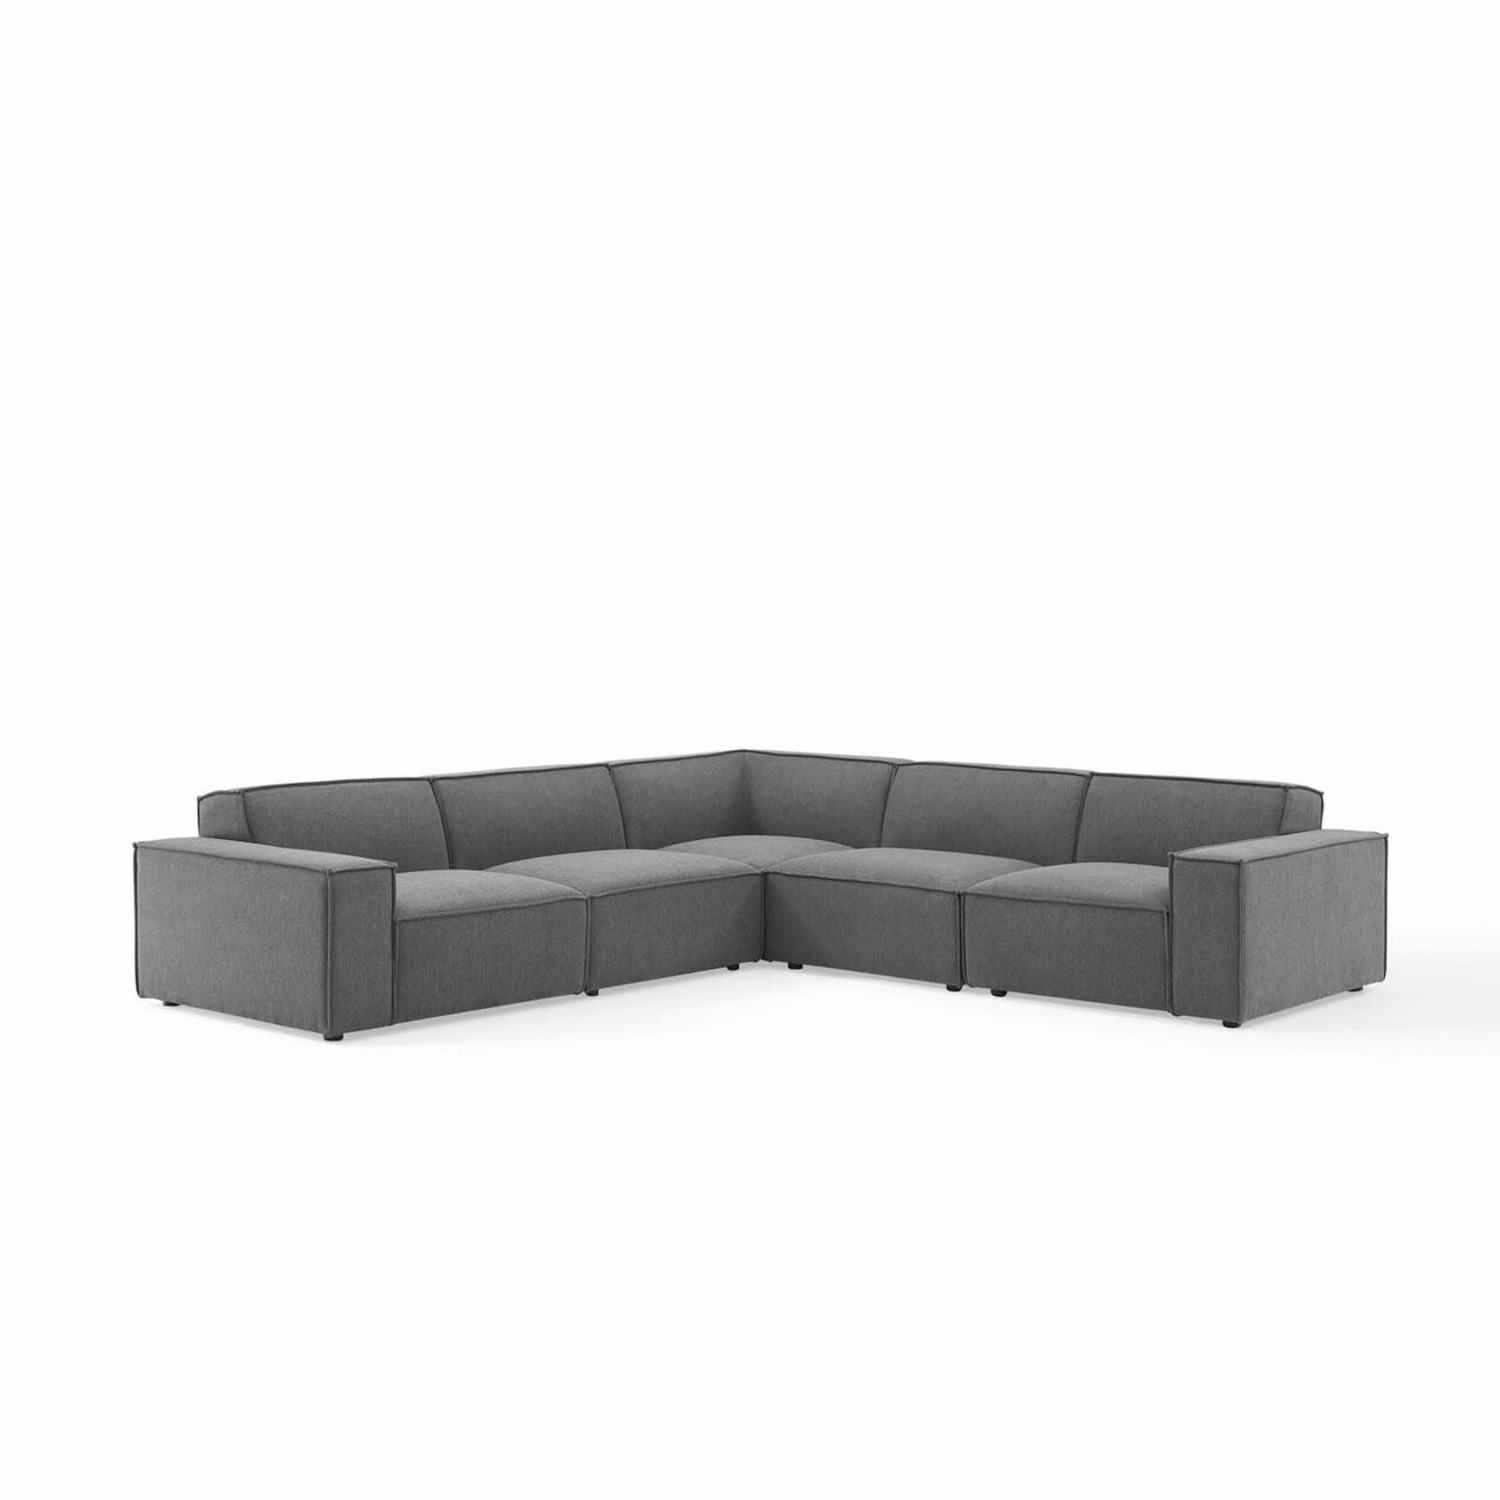 5-Piece Sectional Sofa In CharcoalW/ Piping Detail - image-1